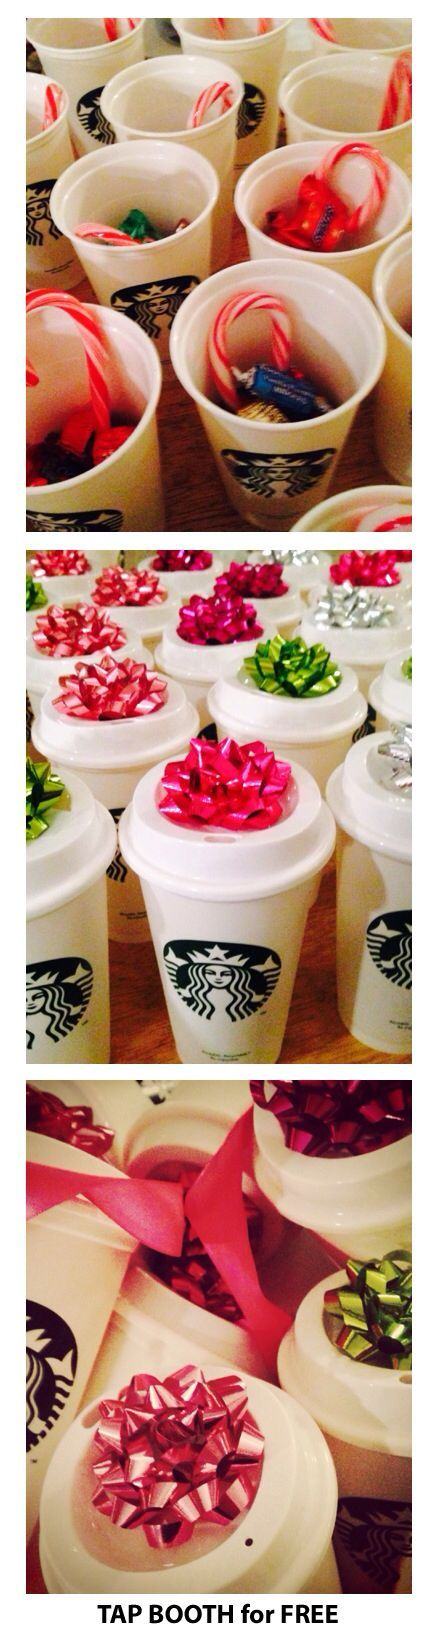 Starbucks for $1.00, fill with candy and add a colorful bow. Great gift for work, school, family gathering. Love.